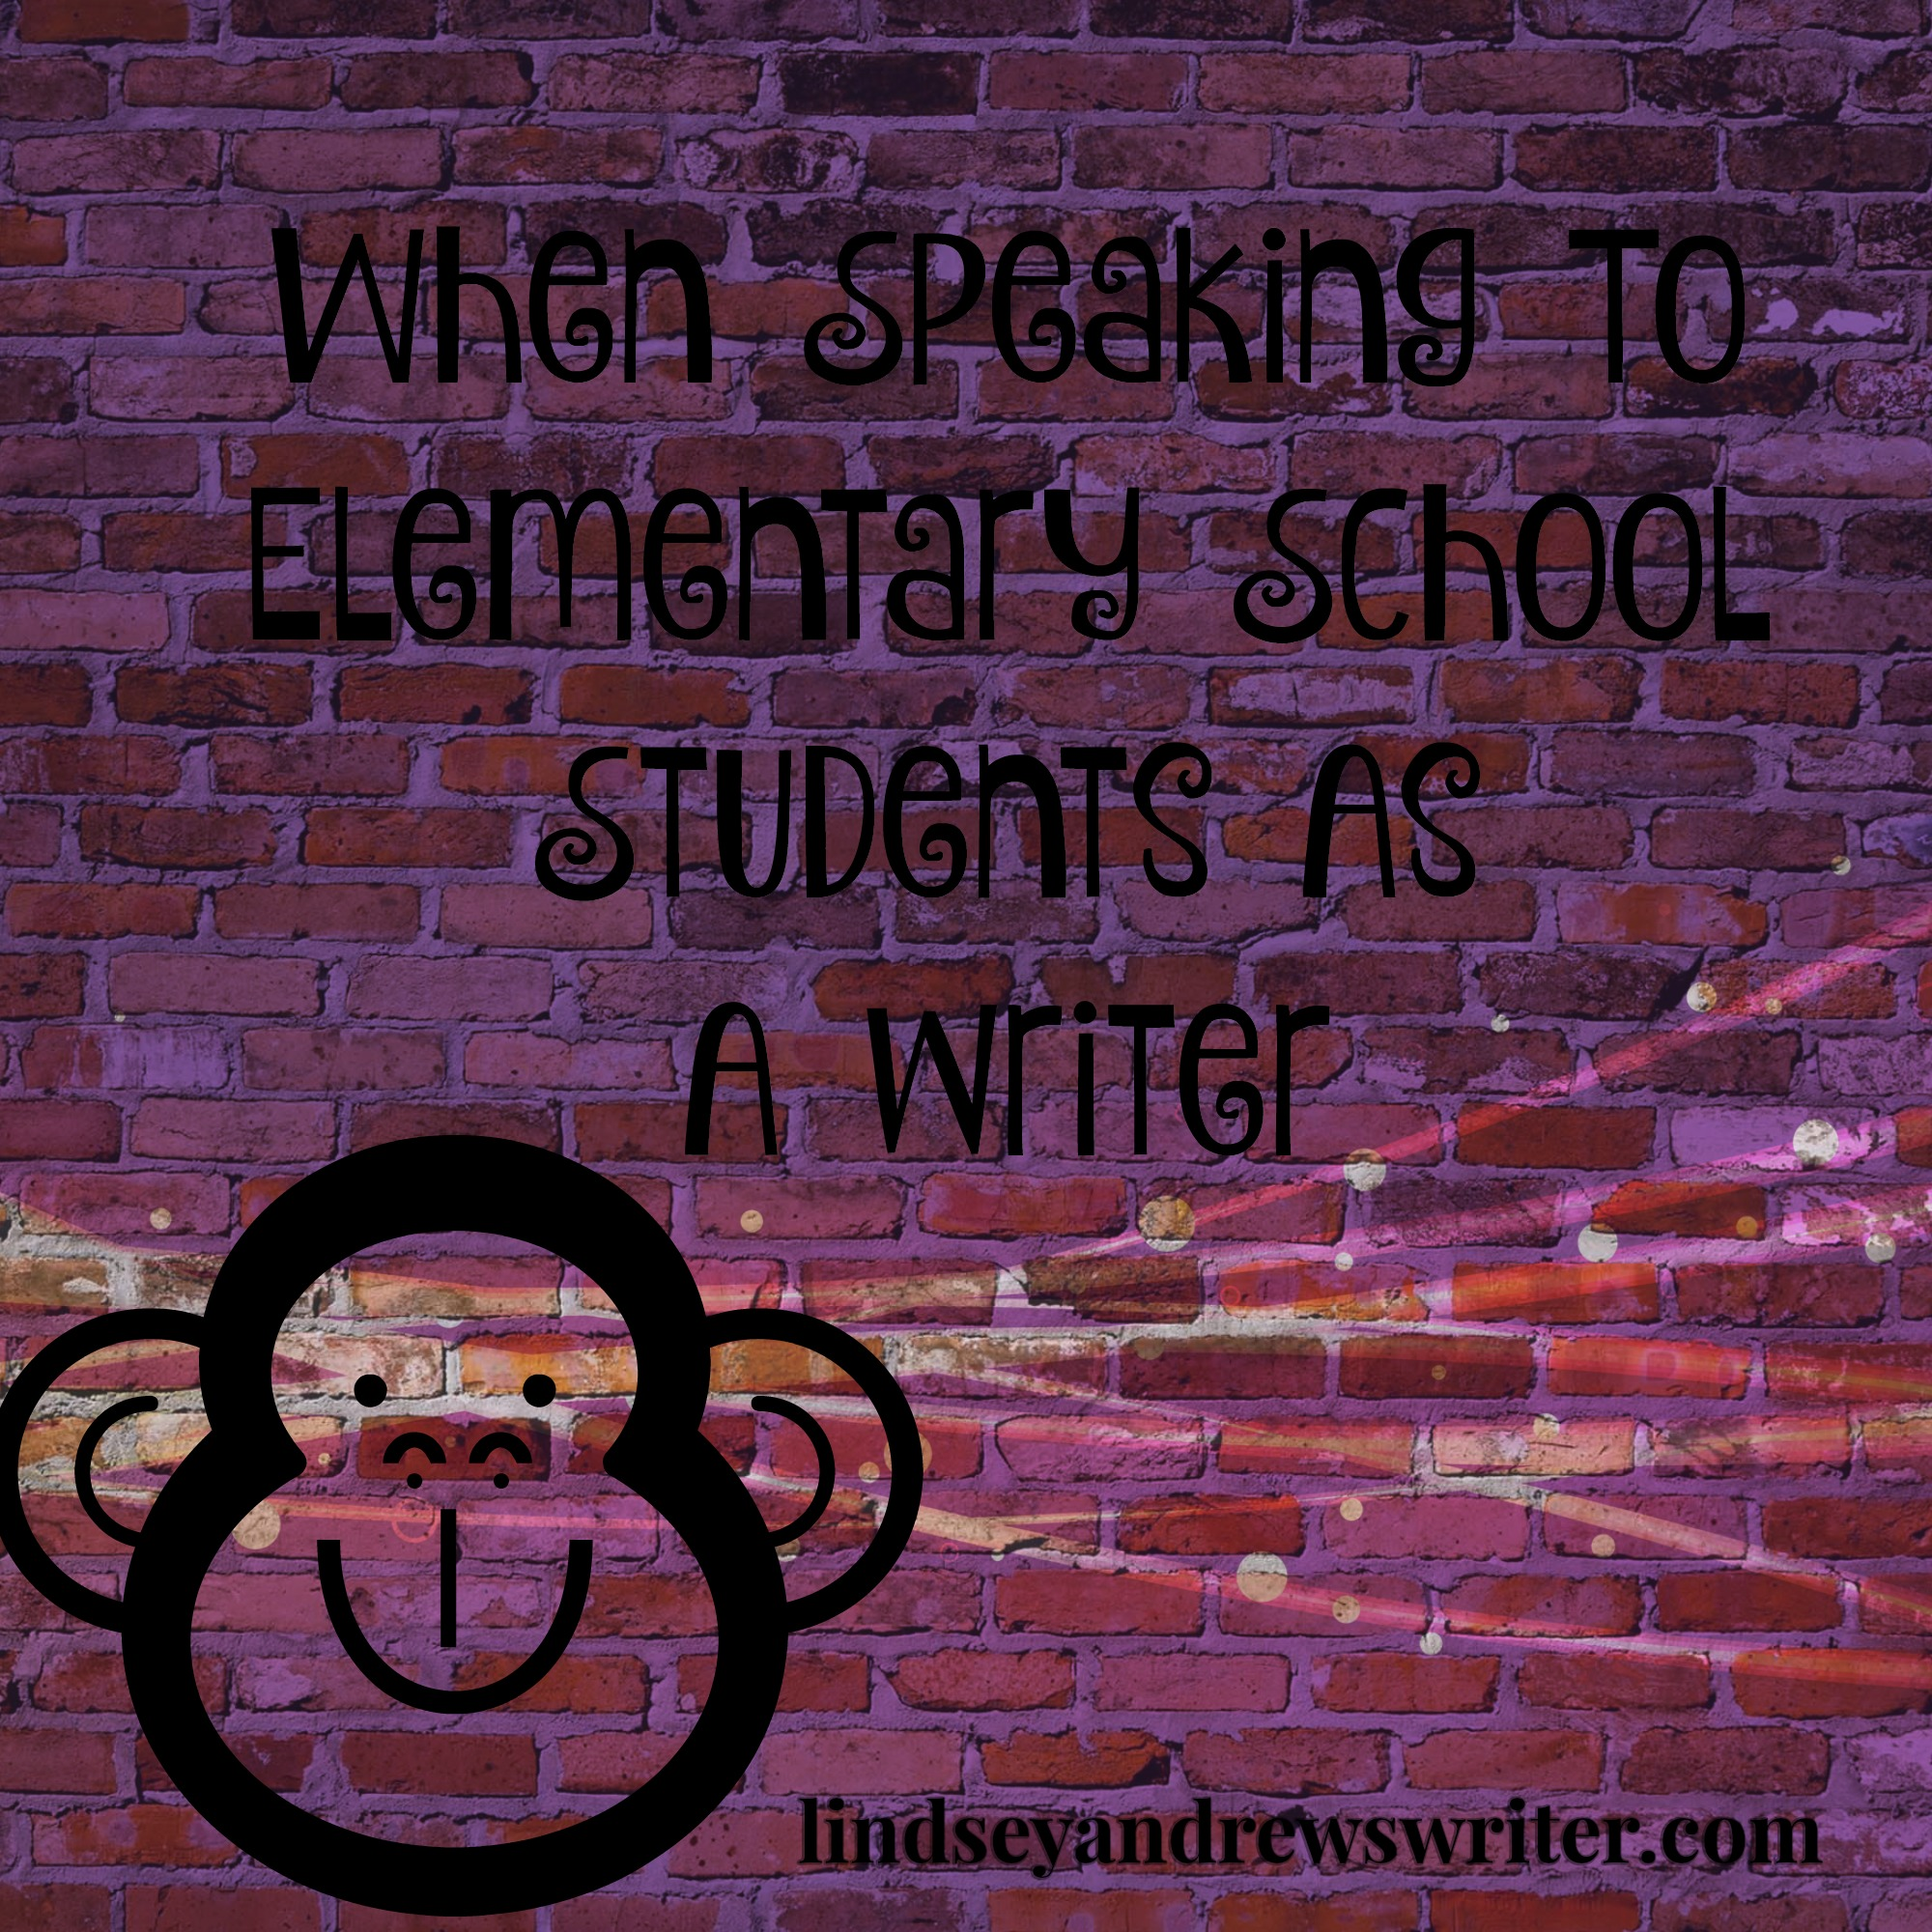 When Speaking To Elementary Students